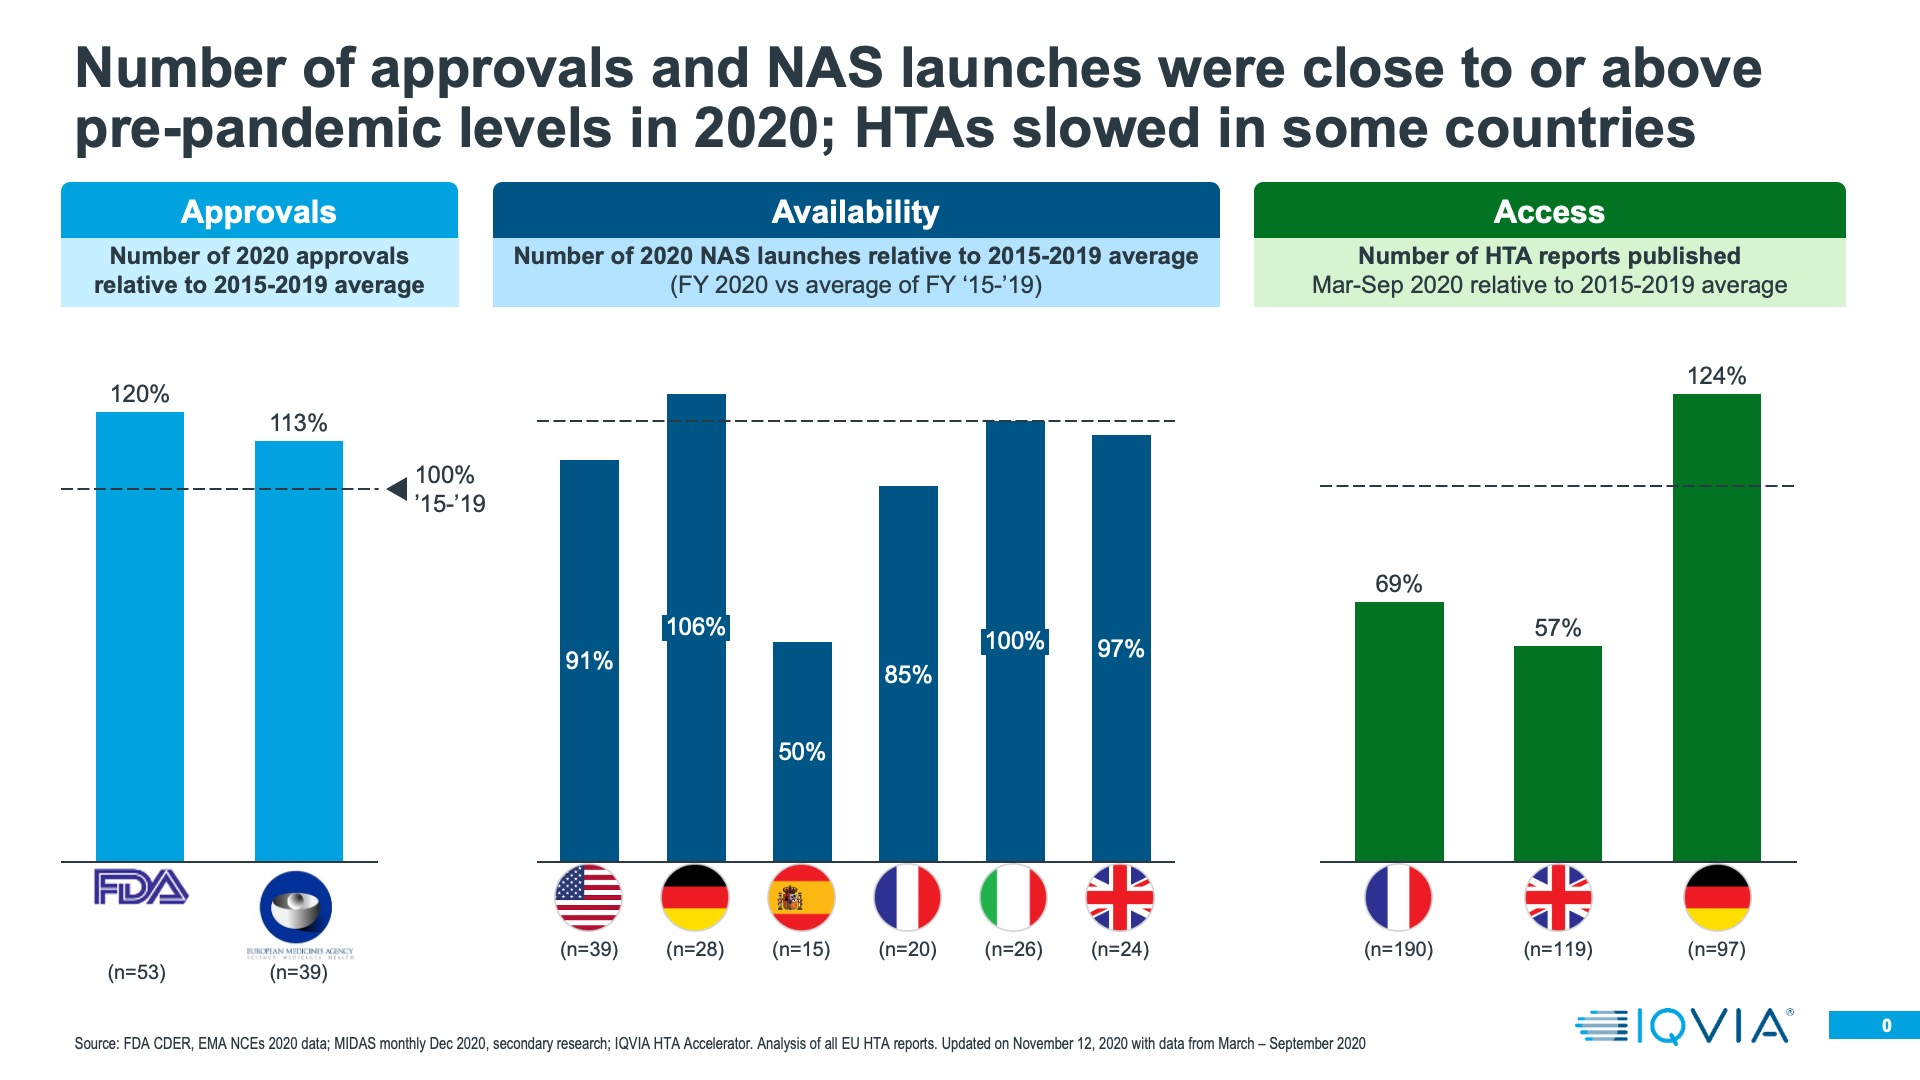 Number of approvals and NAS launches were close to or above pre-pandemic levels in 2020